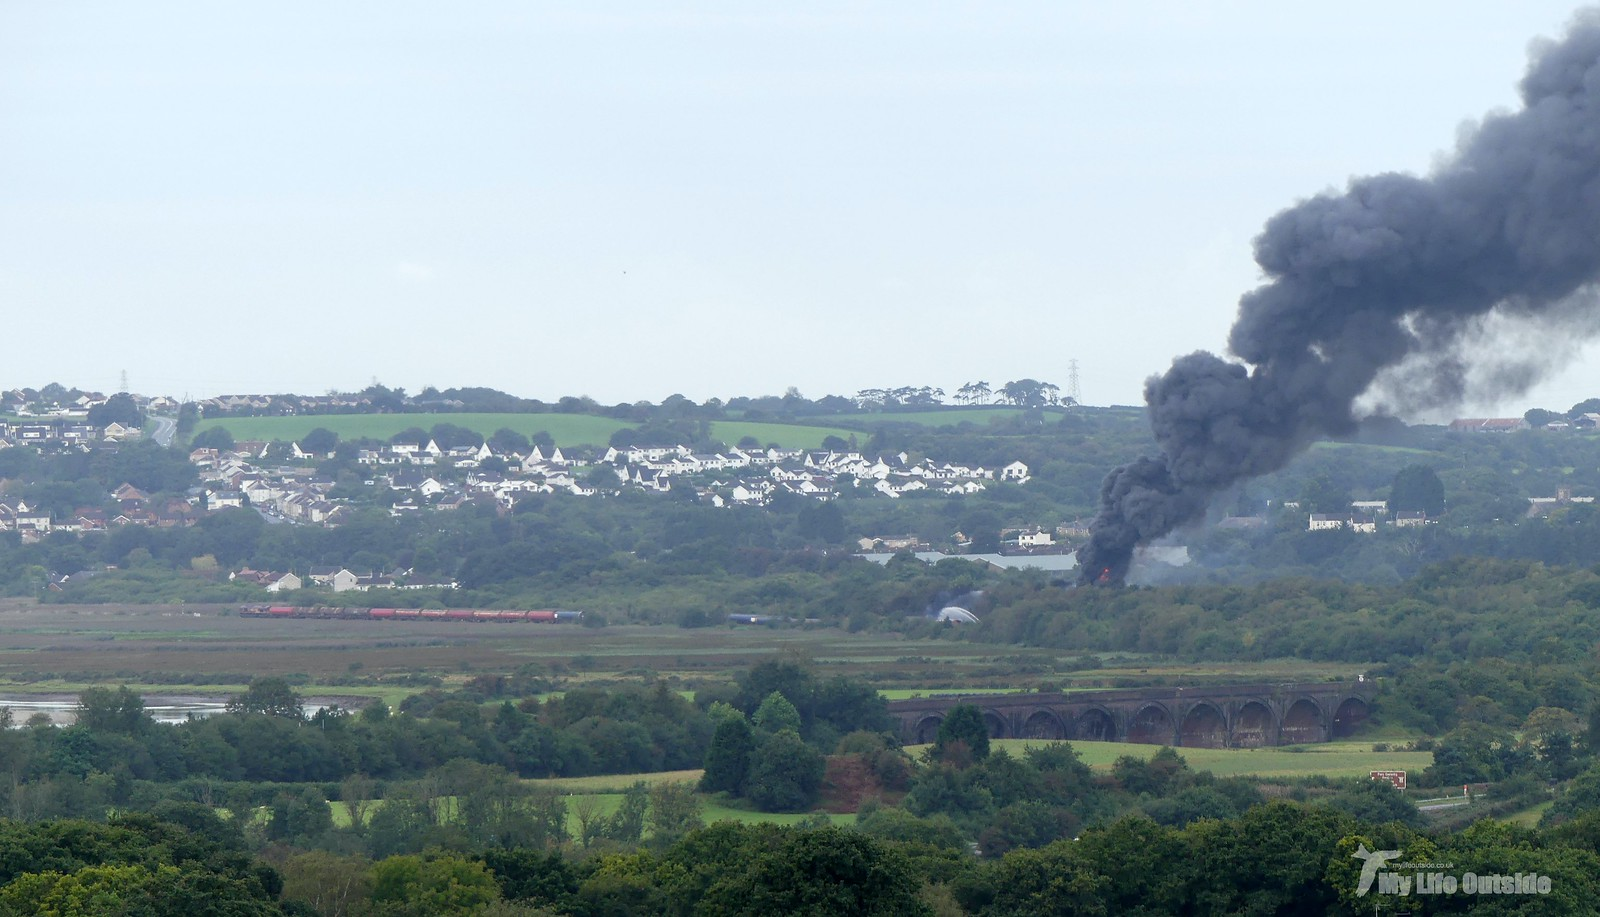 P1240891Llangennech train derailment and fire